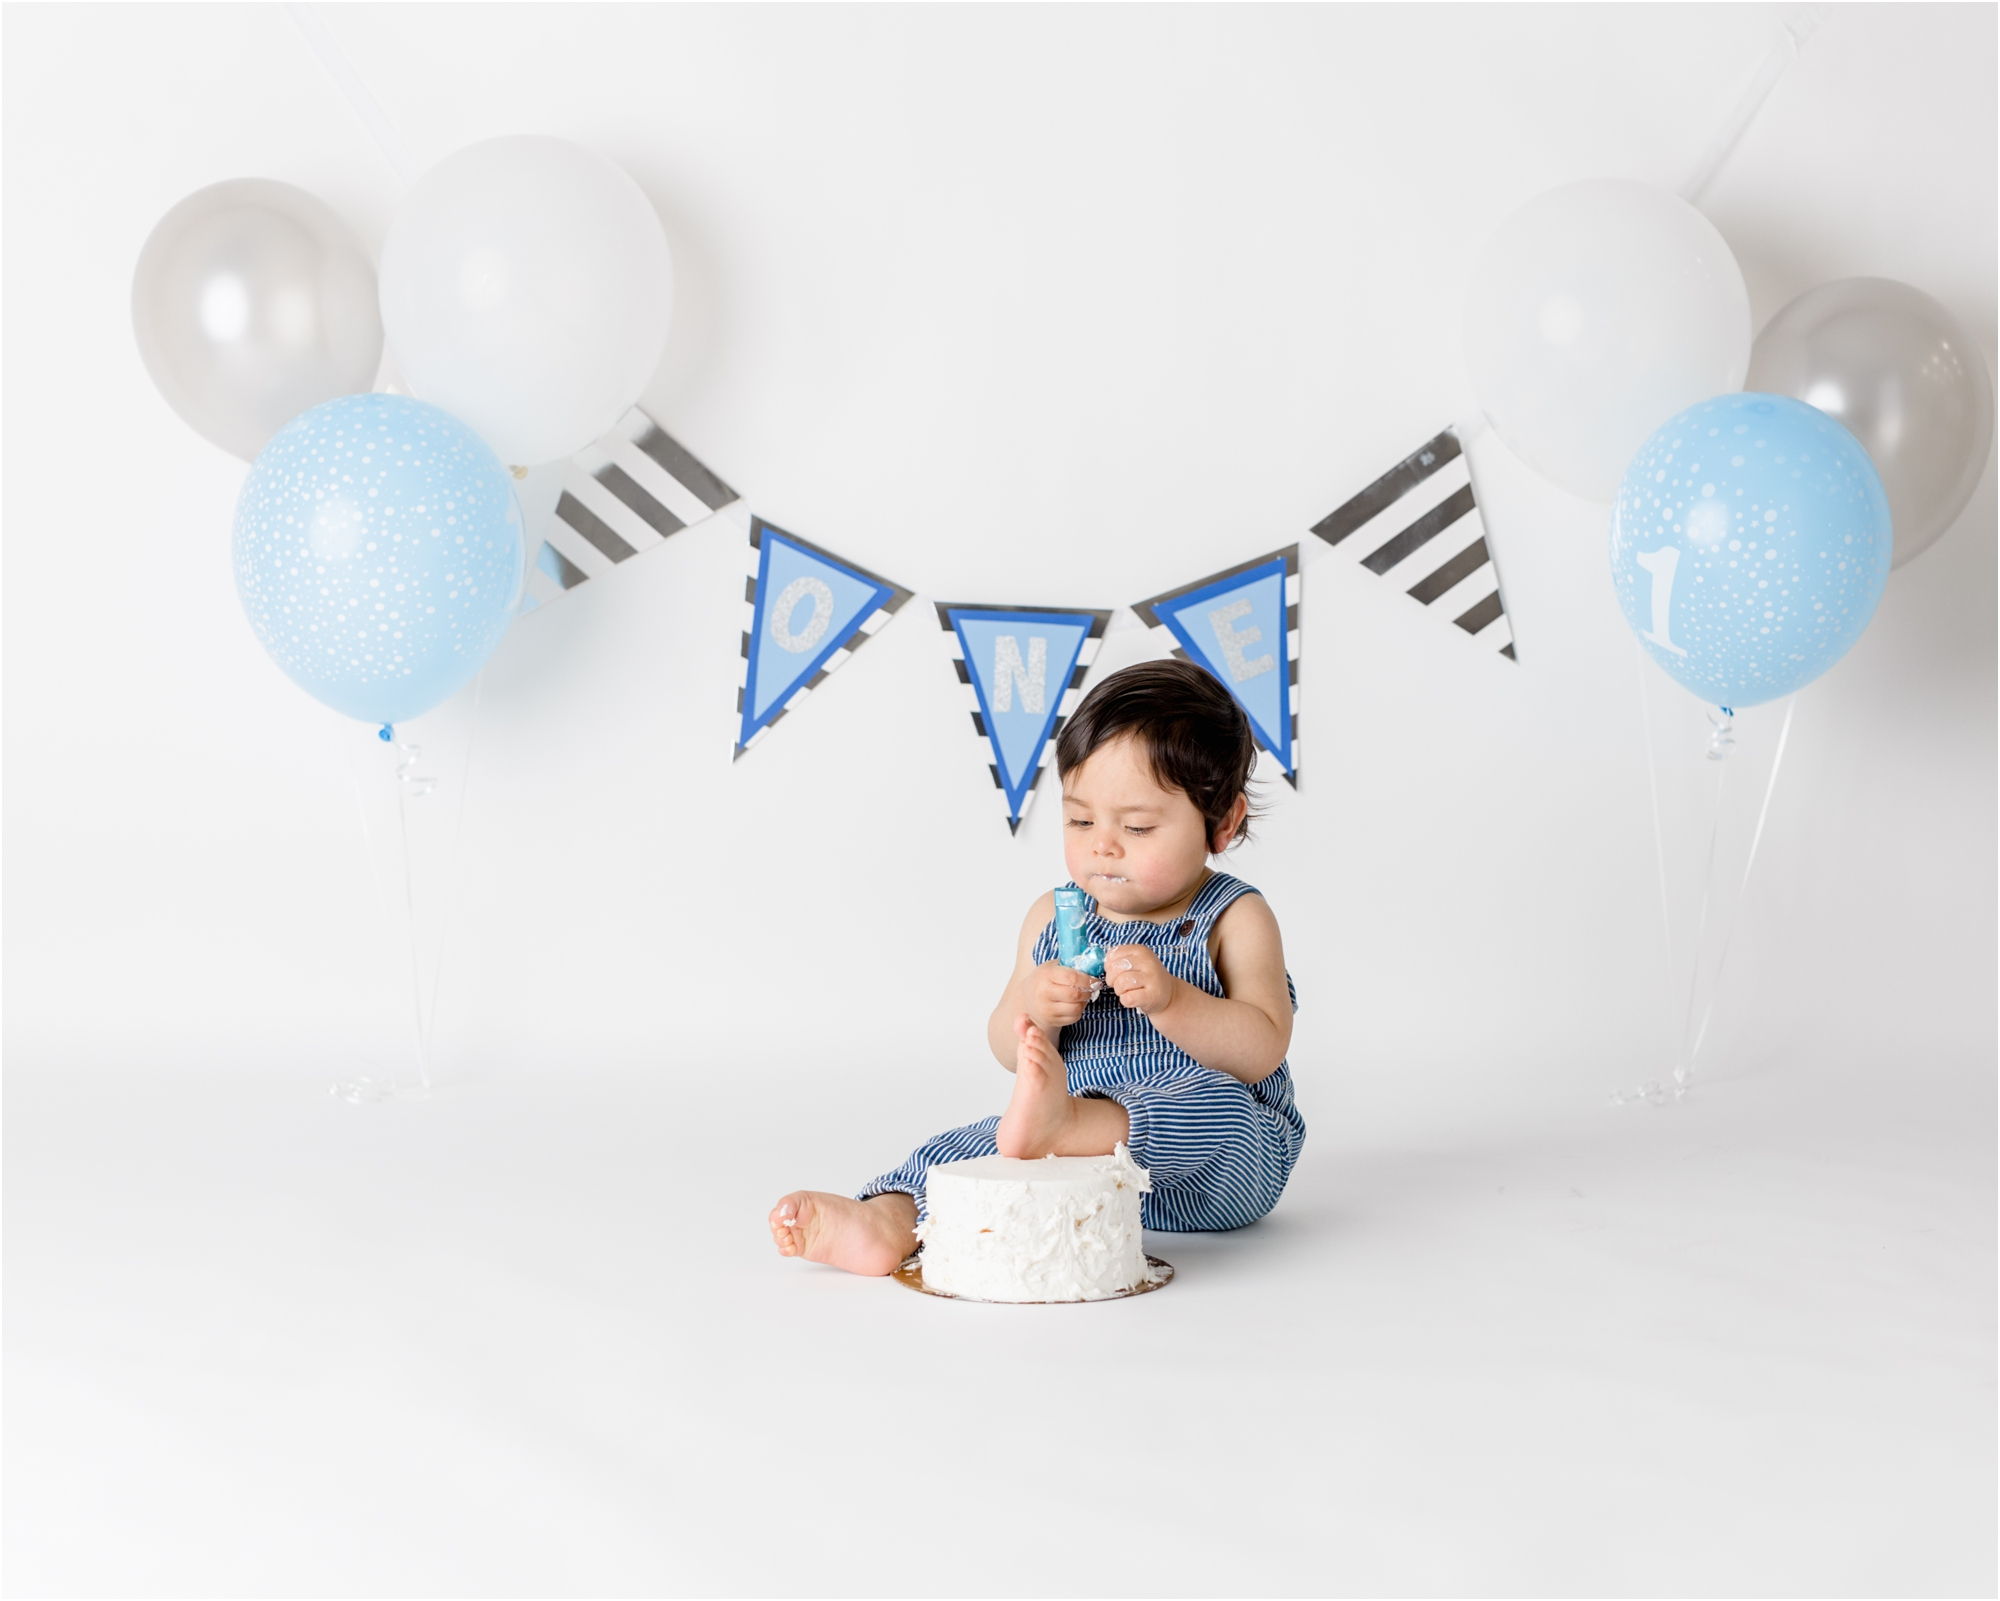 Baby boy starting to dig into his cake during first birthday cake smash session at Houston TX studio. Photo by Lifetime of Clicks Photography.